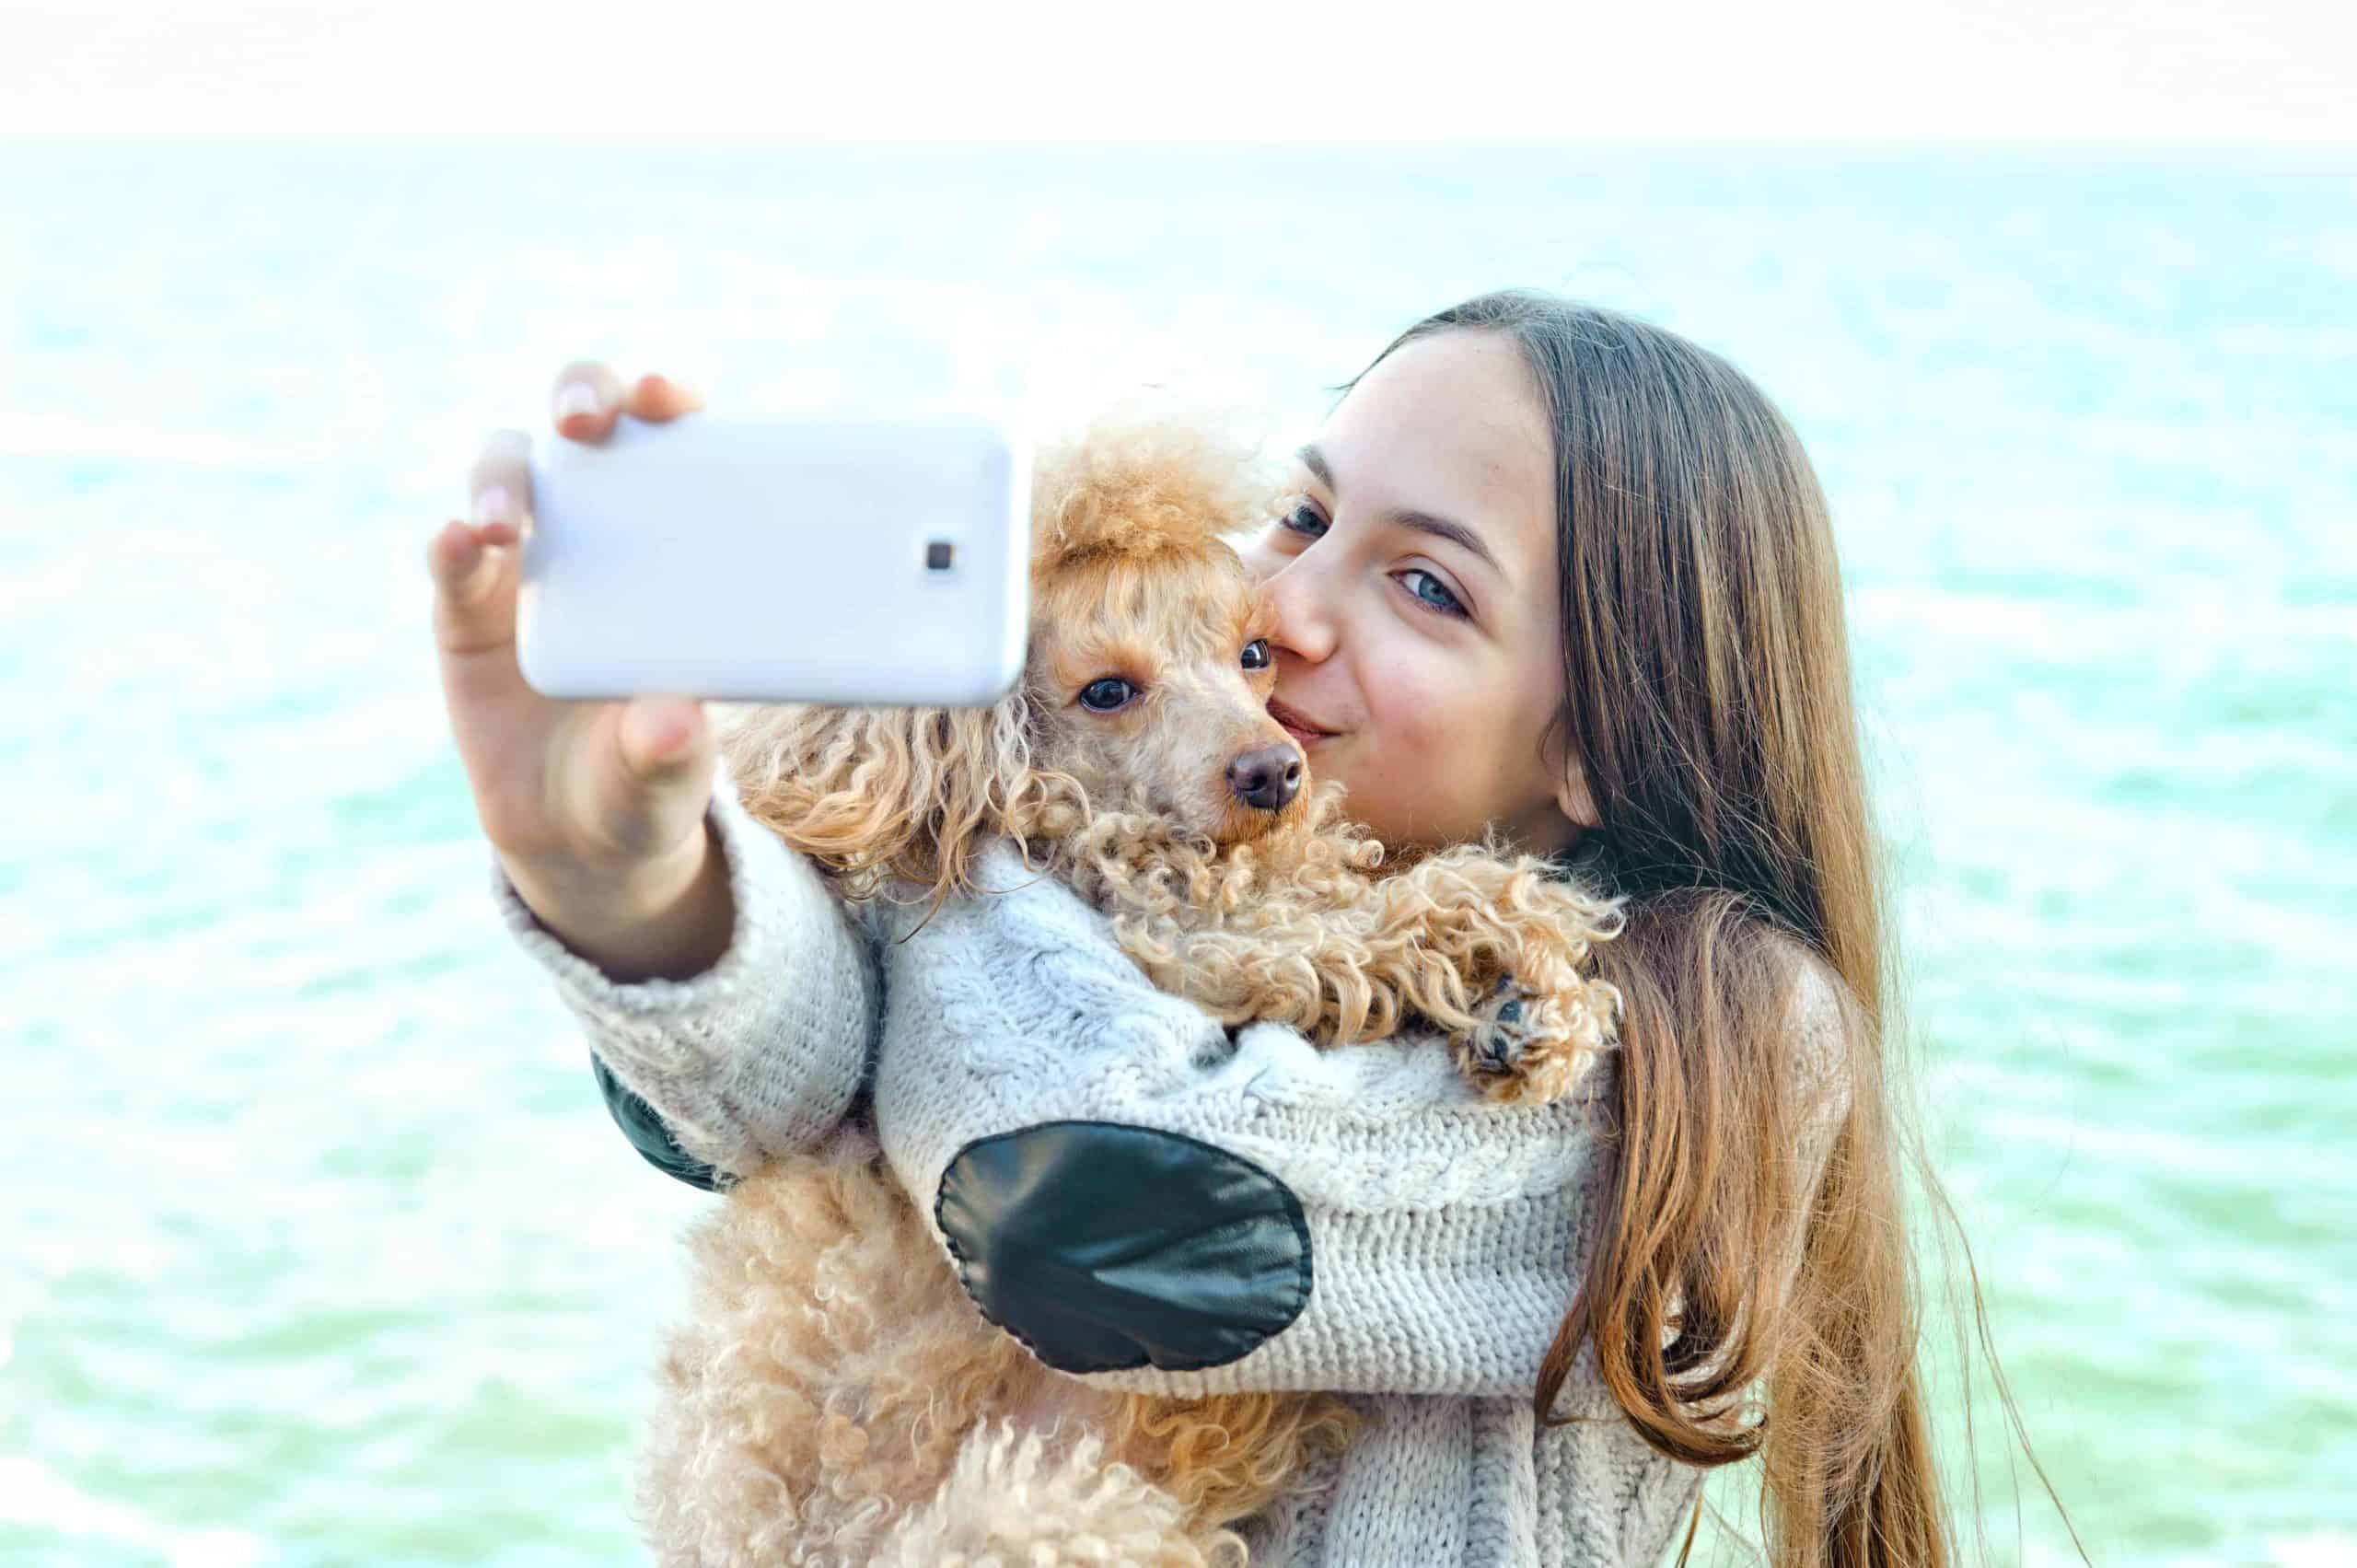 Owner takes selfie while holding her poodle. Creating a special social media account for your doggie is a way to share photos and videos of your pet without irritating your friends and family.